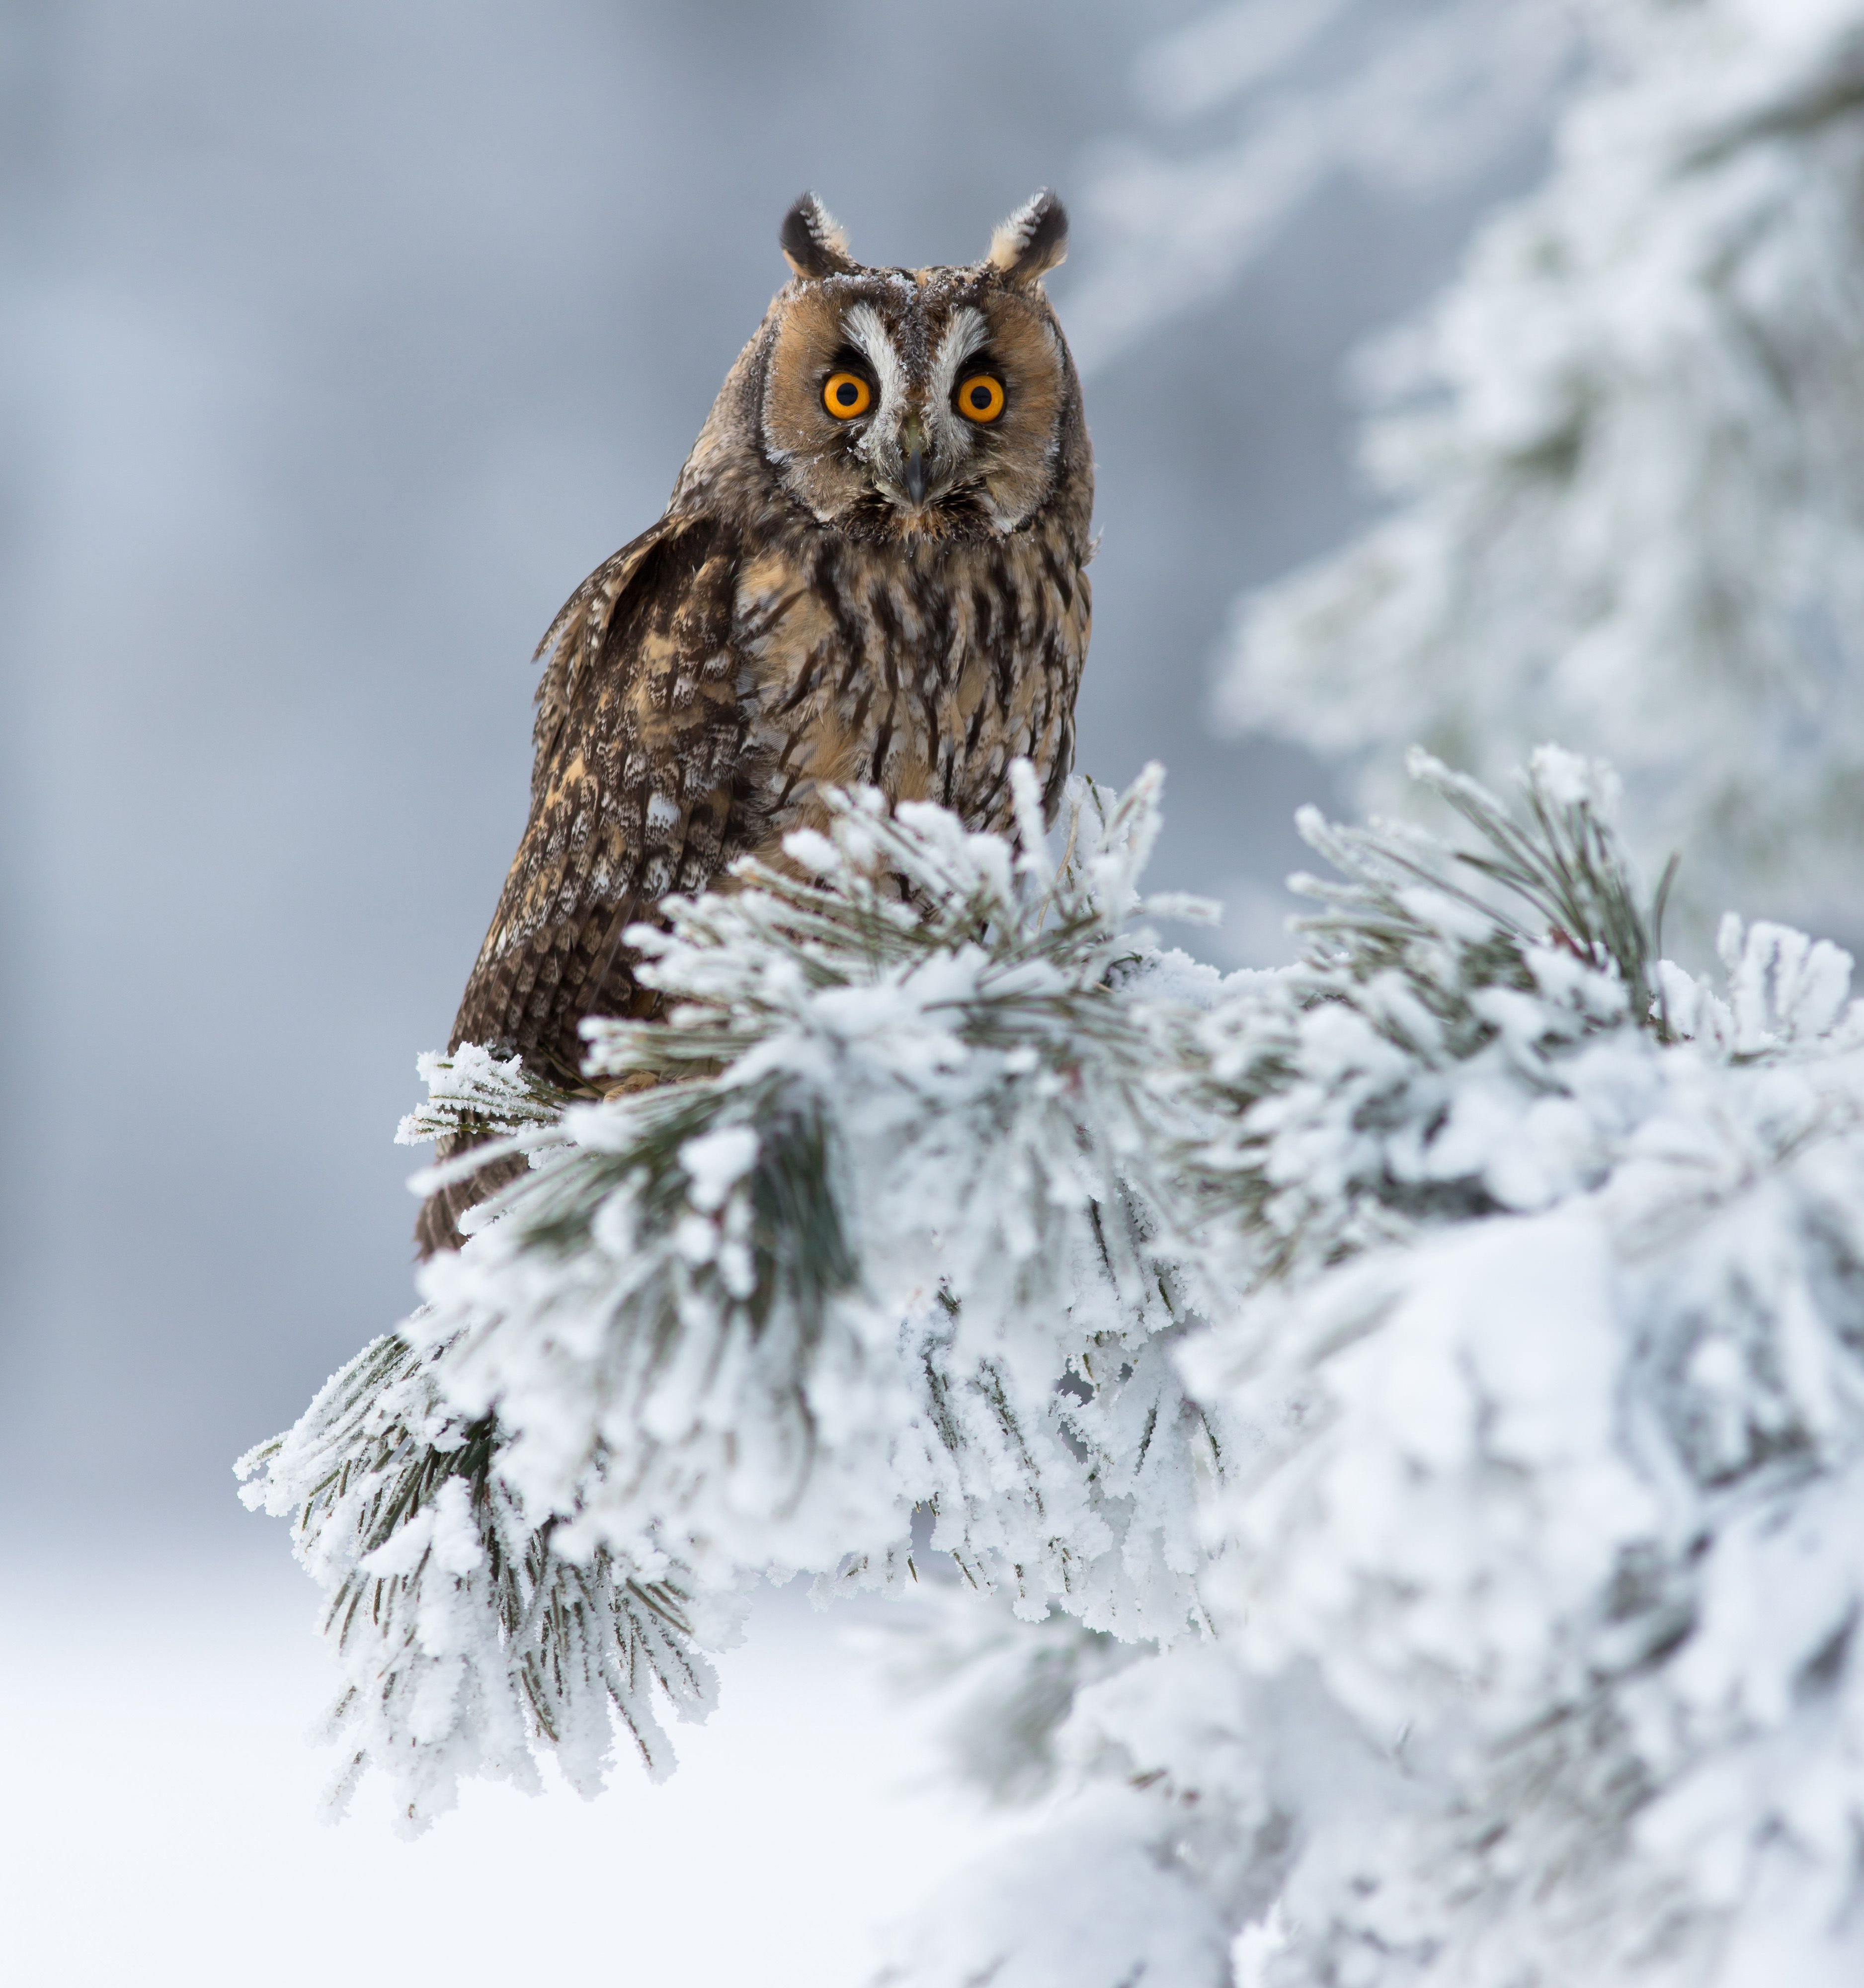 A long-eared owl perched on a snow-covered tree.